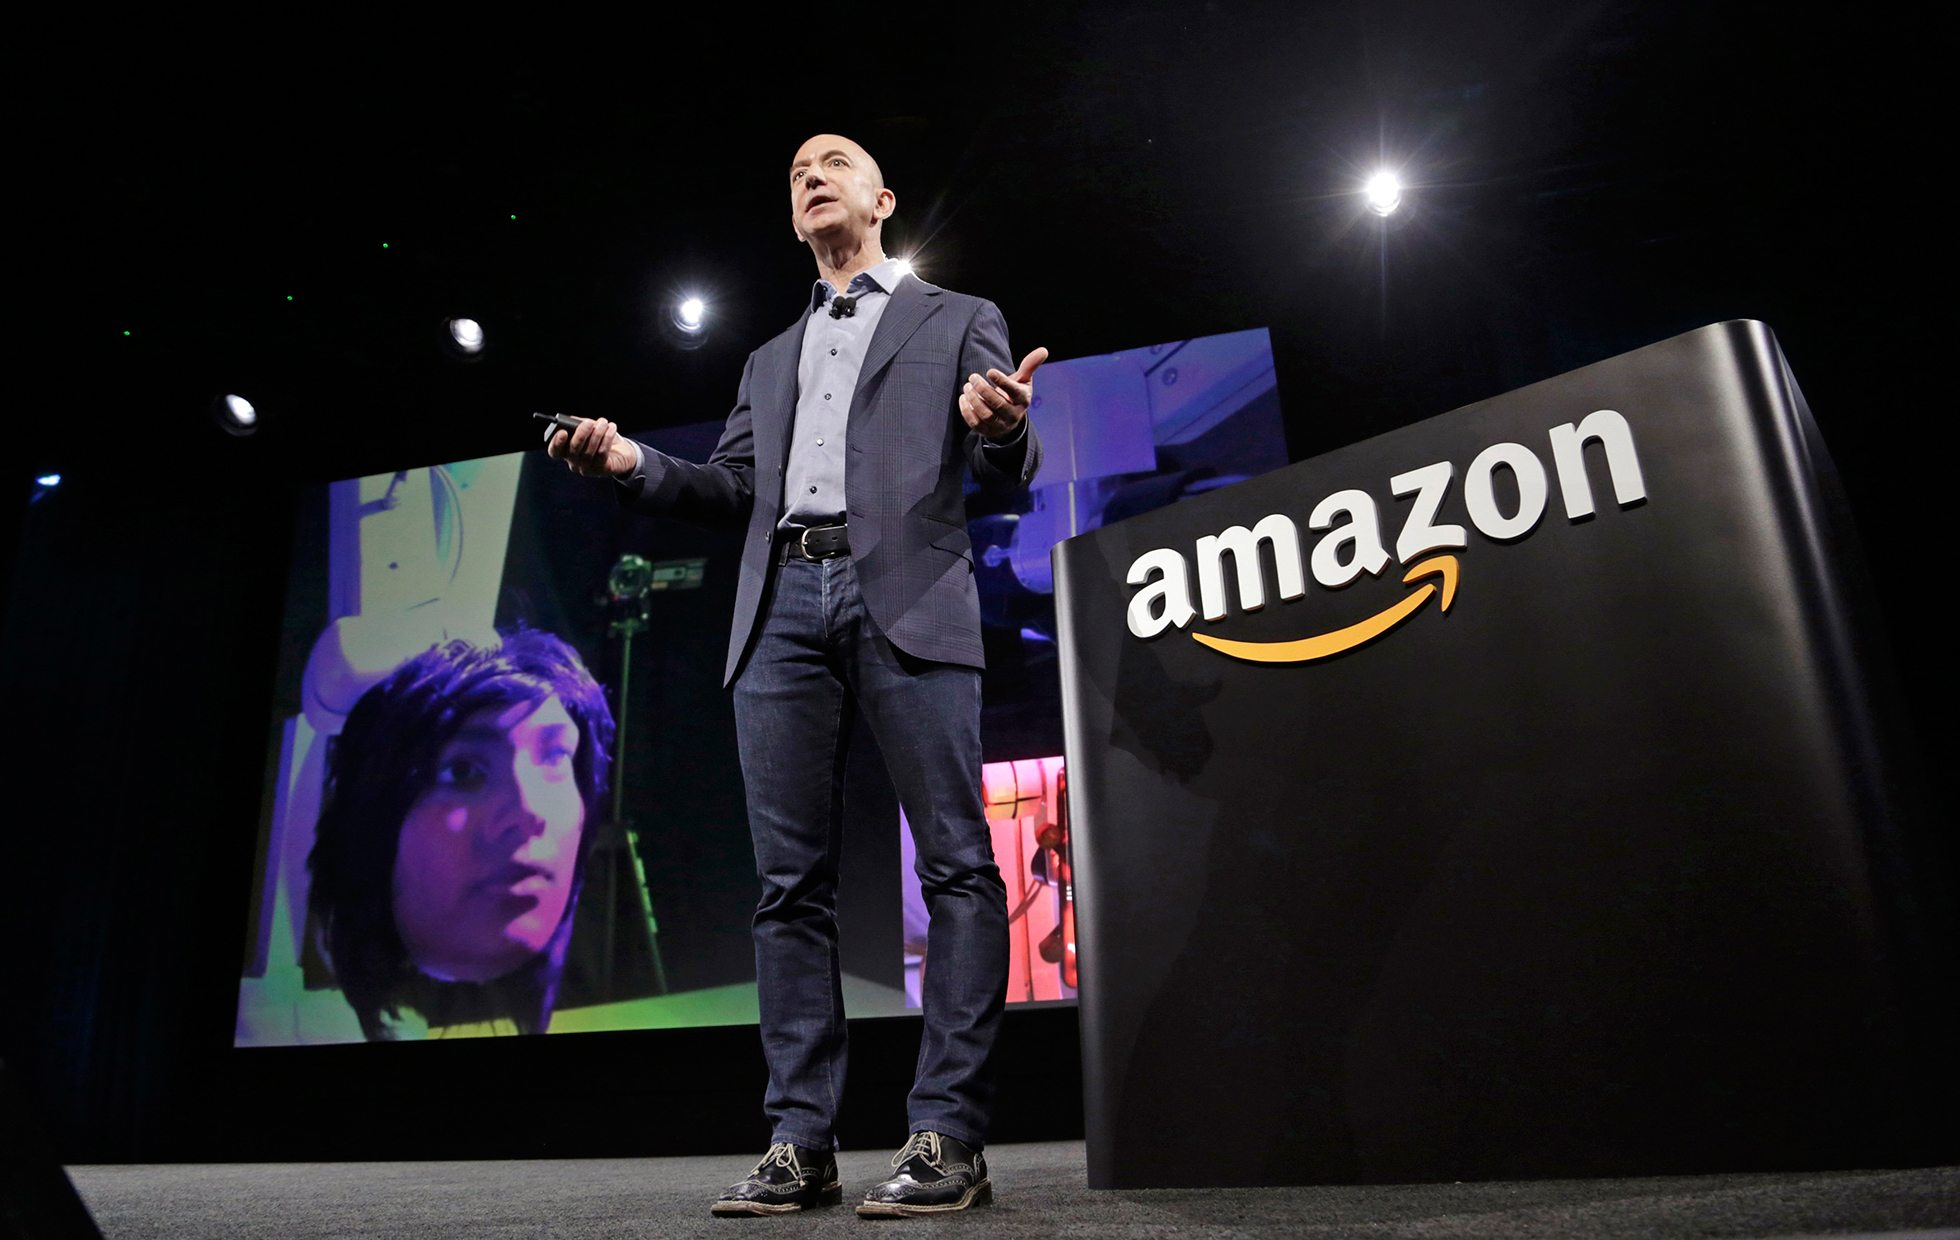 Jeff Bezos intenta congraciarse con Trump